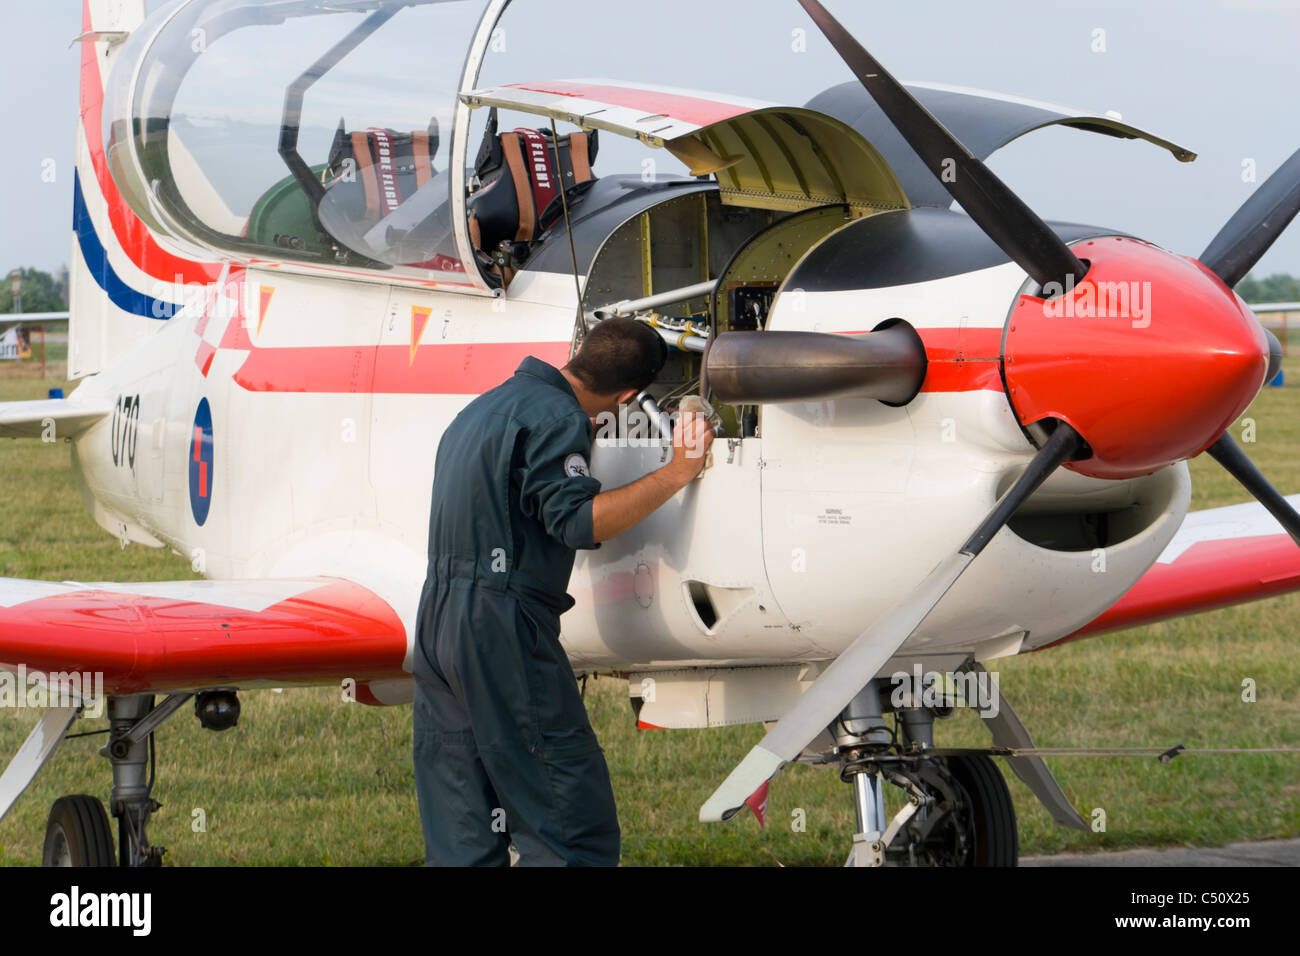 'Wings of storm' (Krila oluje) Croatian air force aerobatic team aircraft during a routine engine maintenance - Stock Image